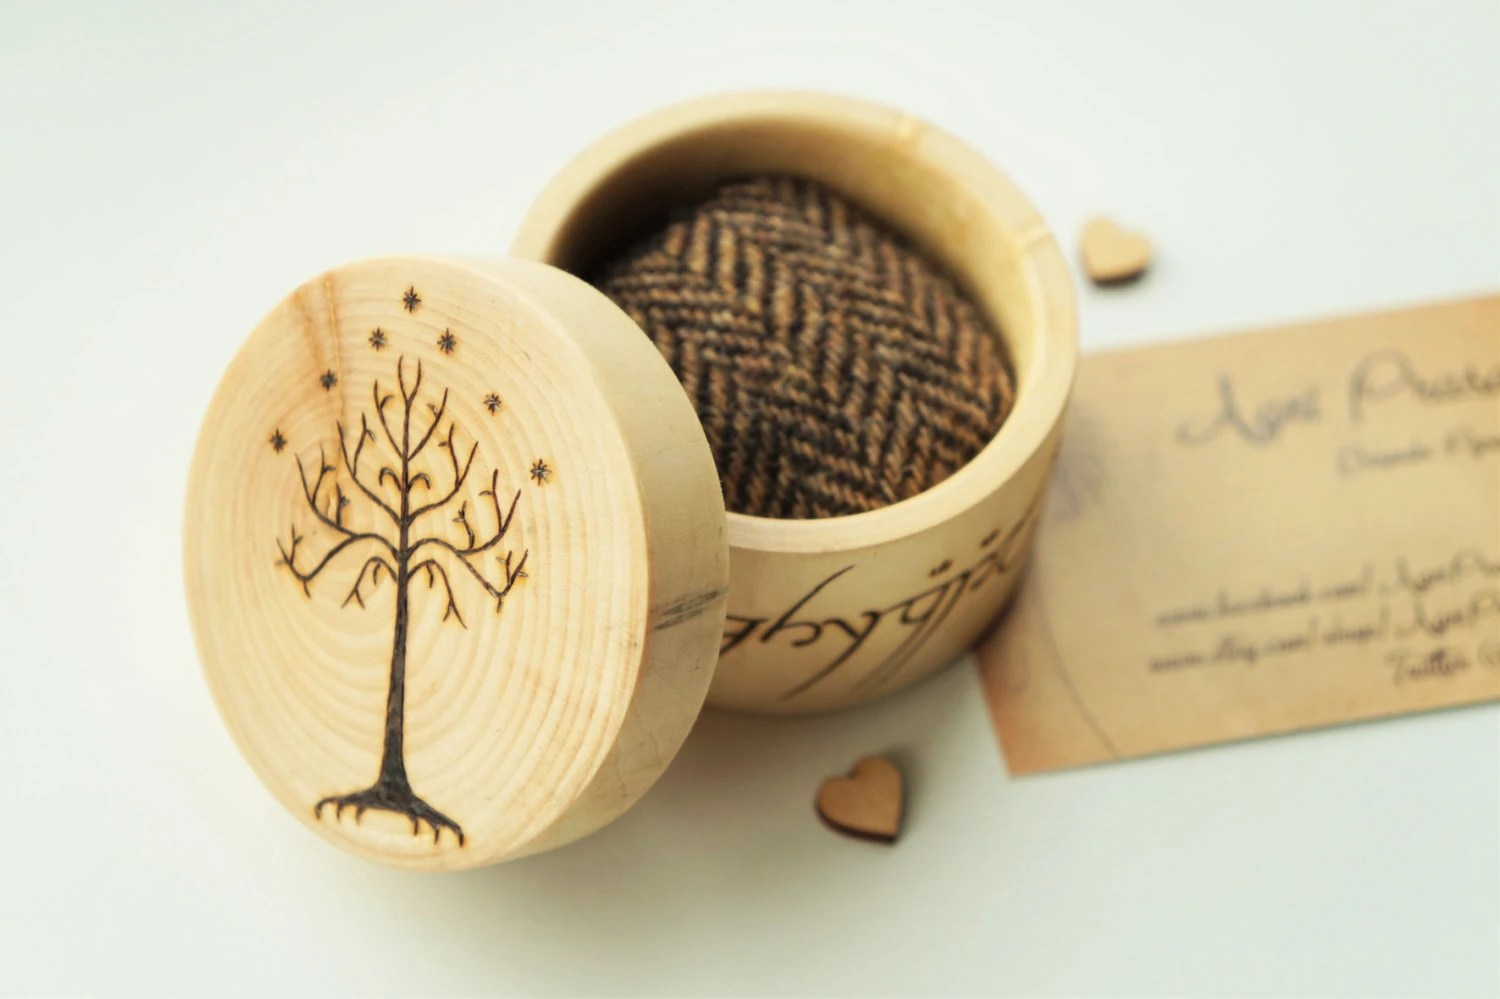 his and hers box lotr wedding ring Ring box wedding ring pot pyrography wedding gift handcrafted wedding Elvish ring box rustic wedding LOTR Lord of the rings gift